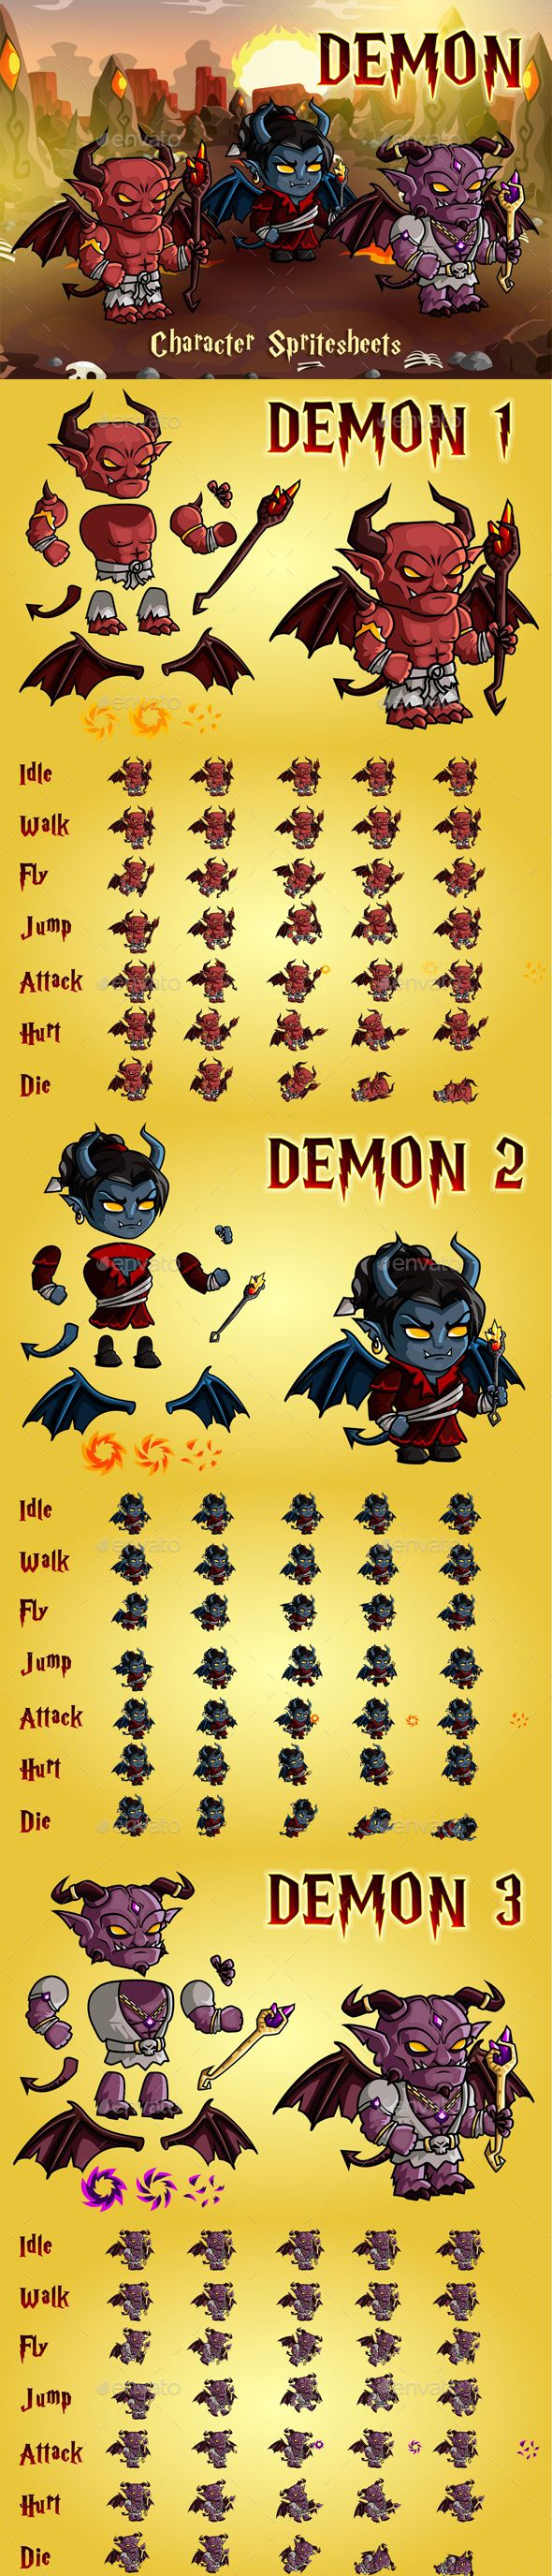 Demon 2D Game Character Sprite Sheet - #Sprites #Game